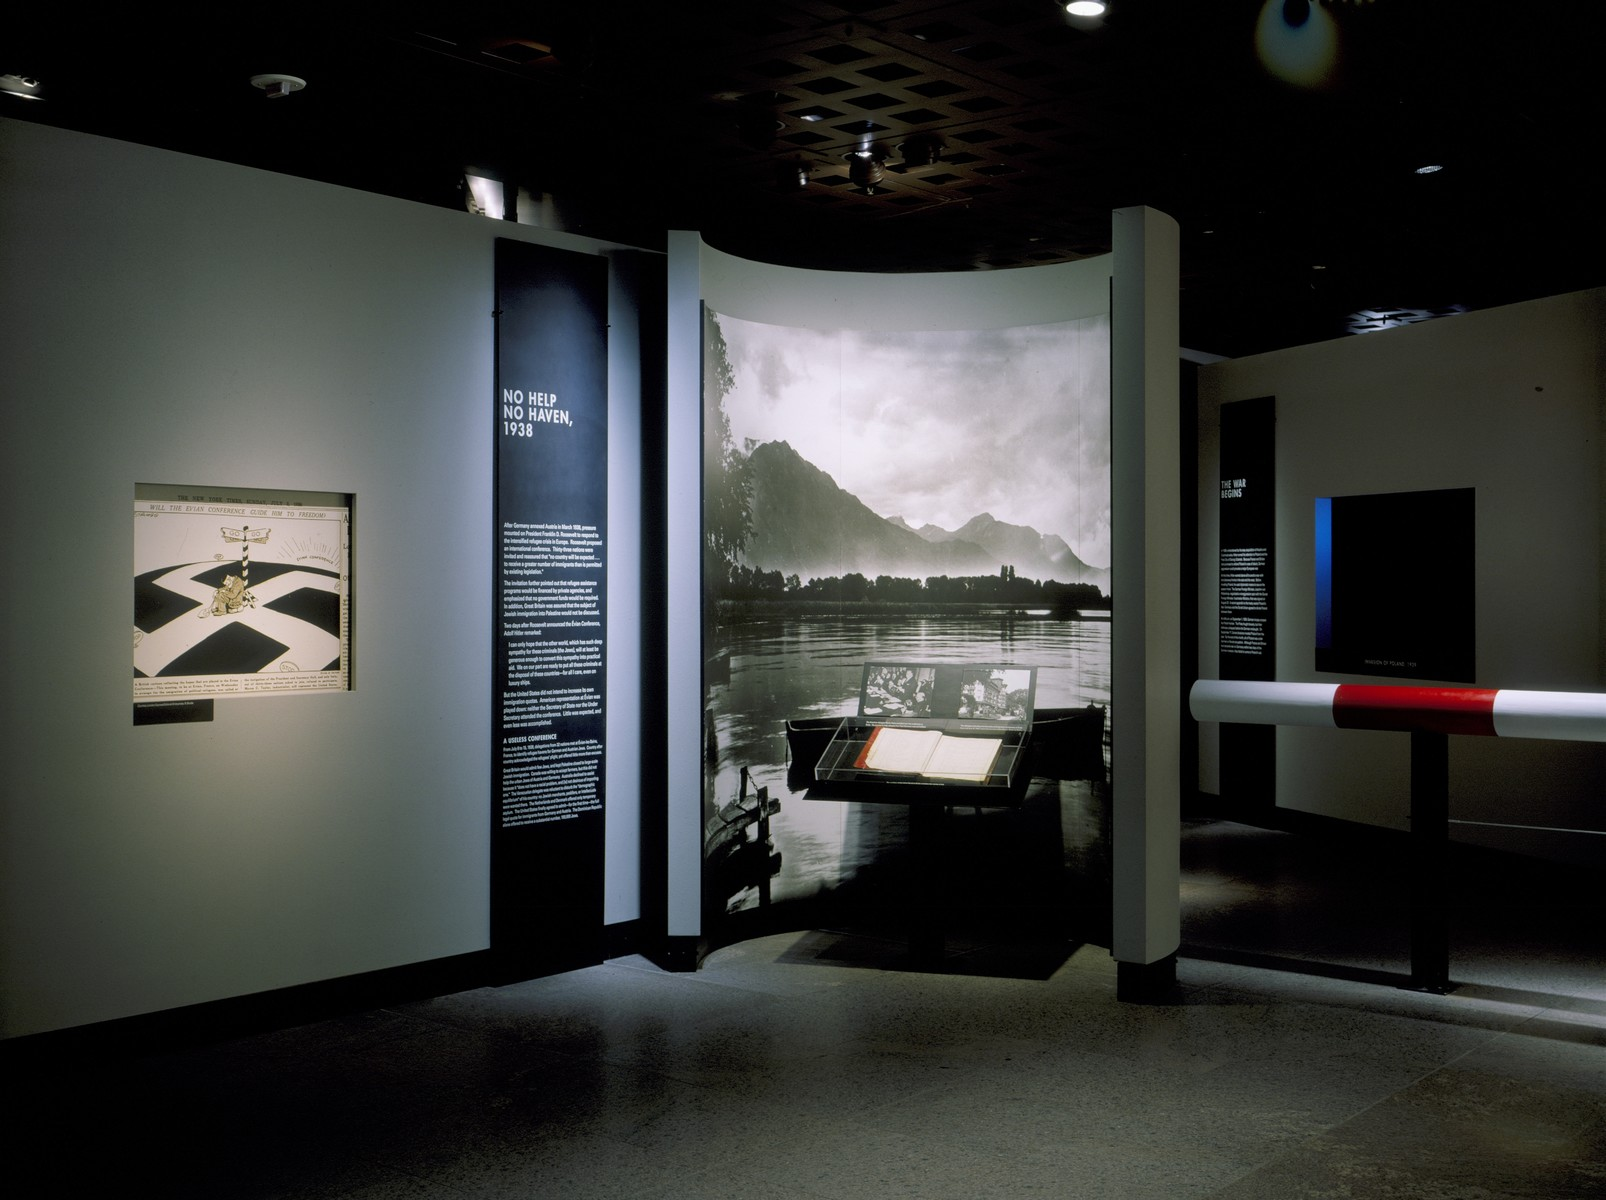 """View of the """"No Help, No Haven, 1938"""" display, featuring the guest book from the Hotel Royal in Evian-les-Bains, on the fourth floor of the permanent exhibition at the U.S. Holocaust Memorial Museum."""